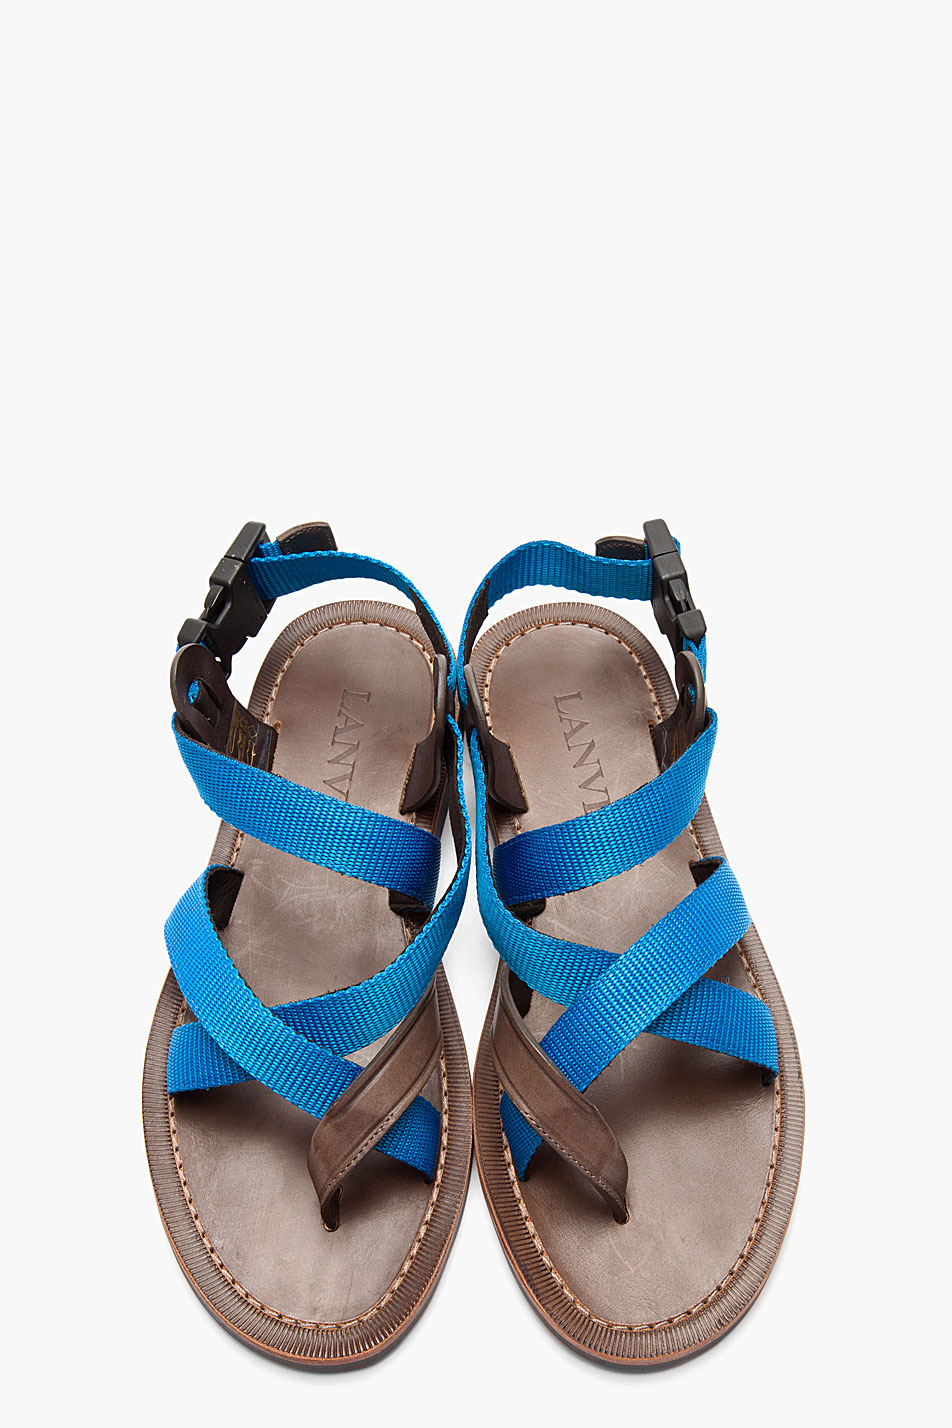 3c4955156227 Lyst - Lanvin Blue Brown Flat Leather Multistrap Sandals in Blue for Men